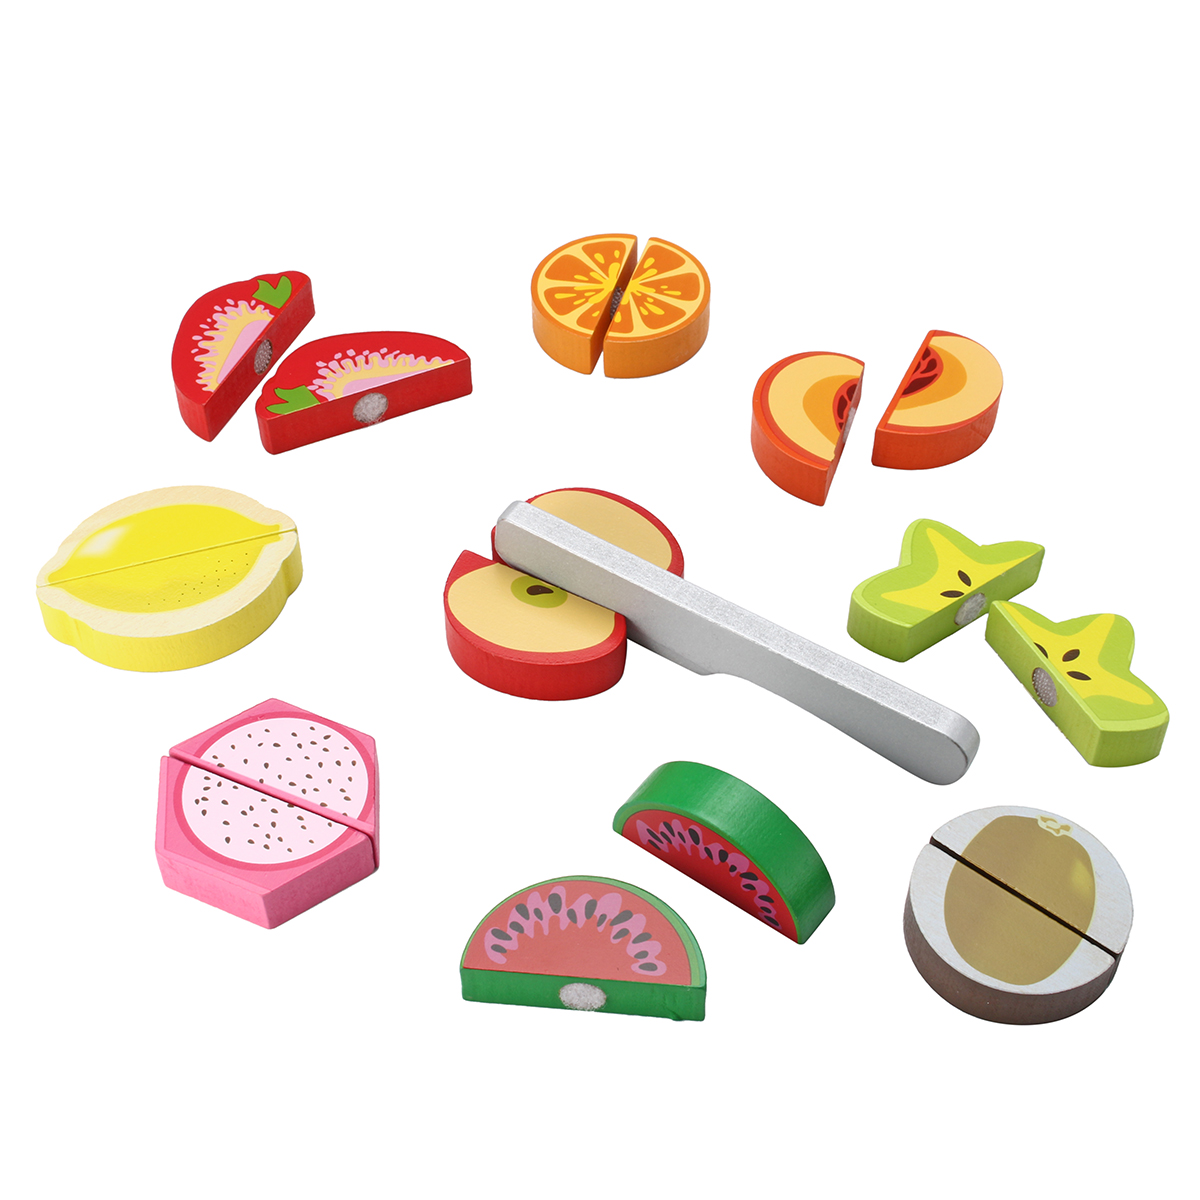 Children Wooden Pretend Role Play Food Toy Kitchen Fruit Vegetable Cutting Set